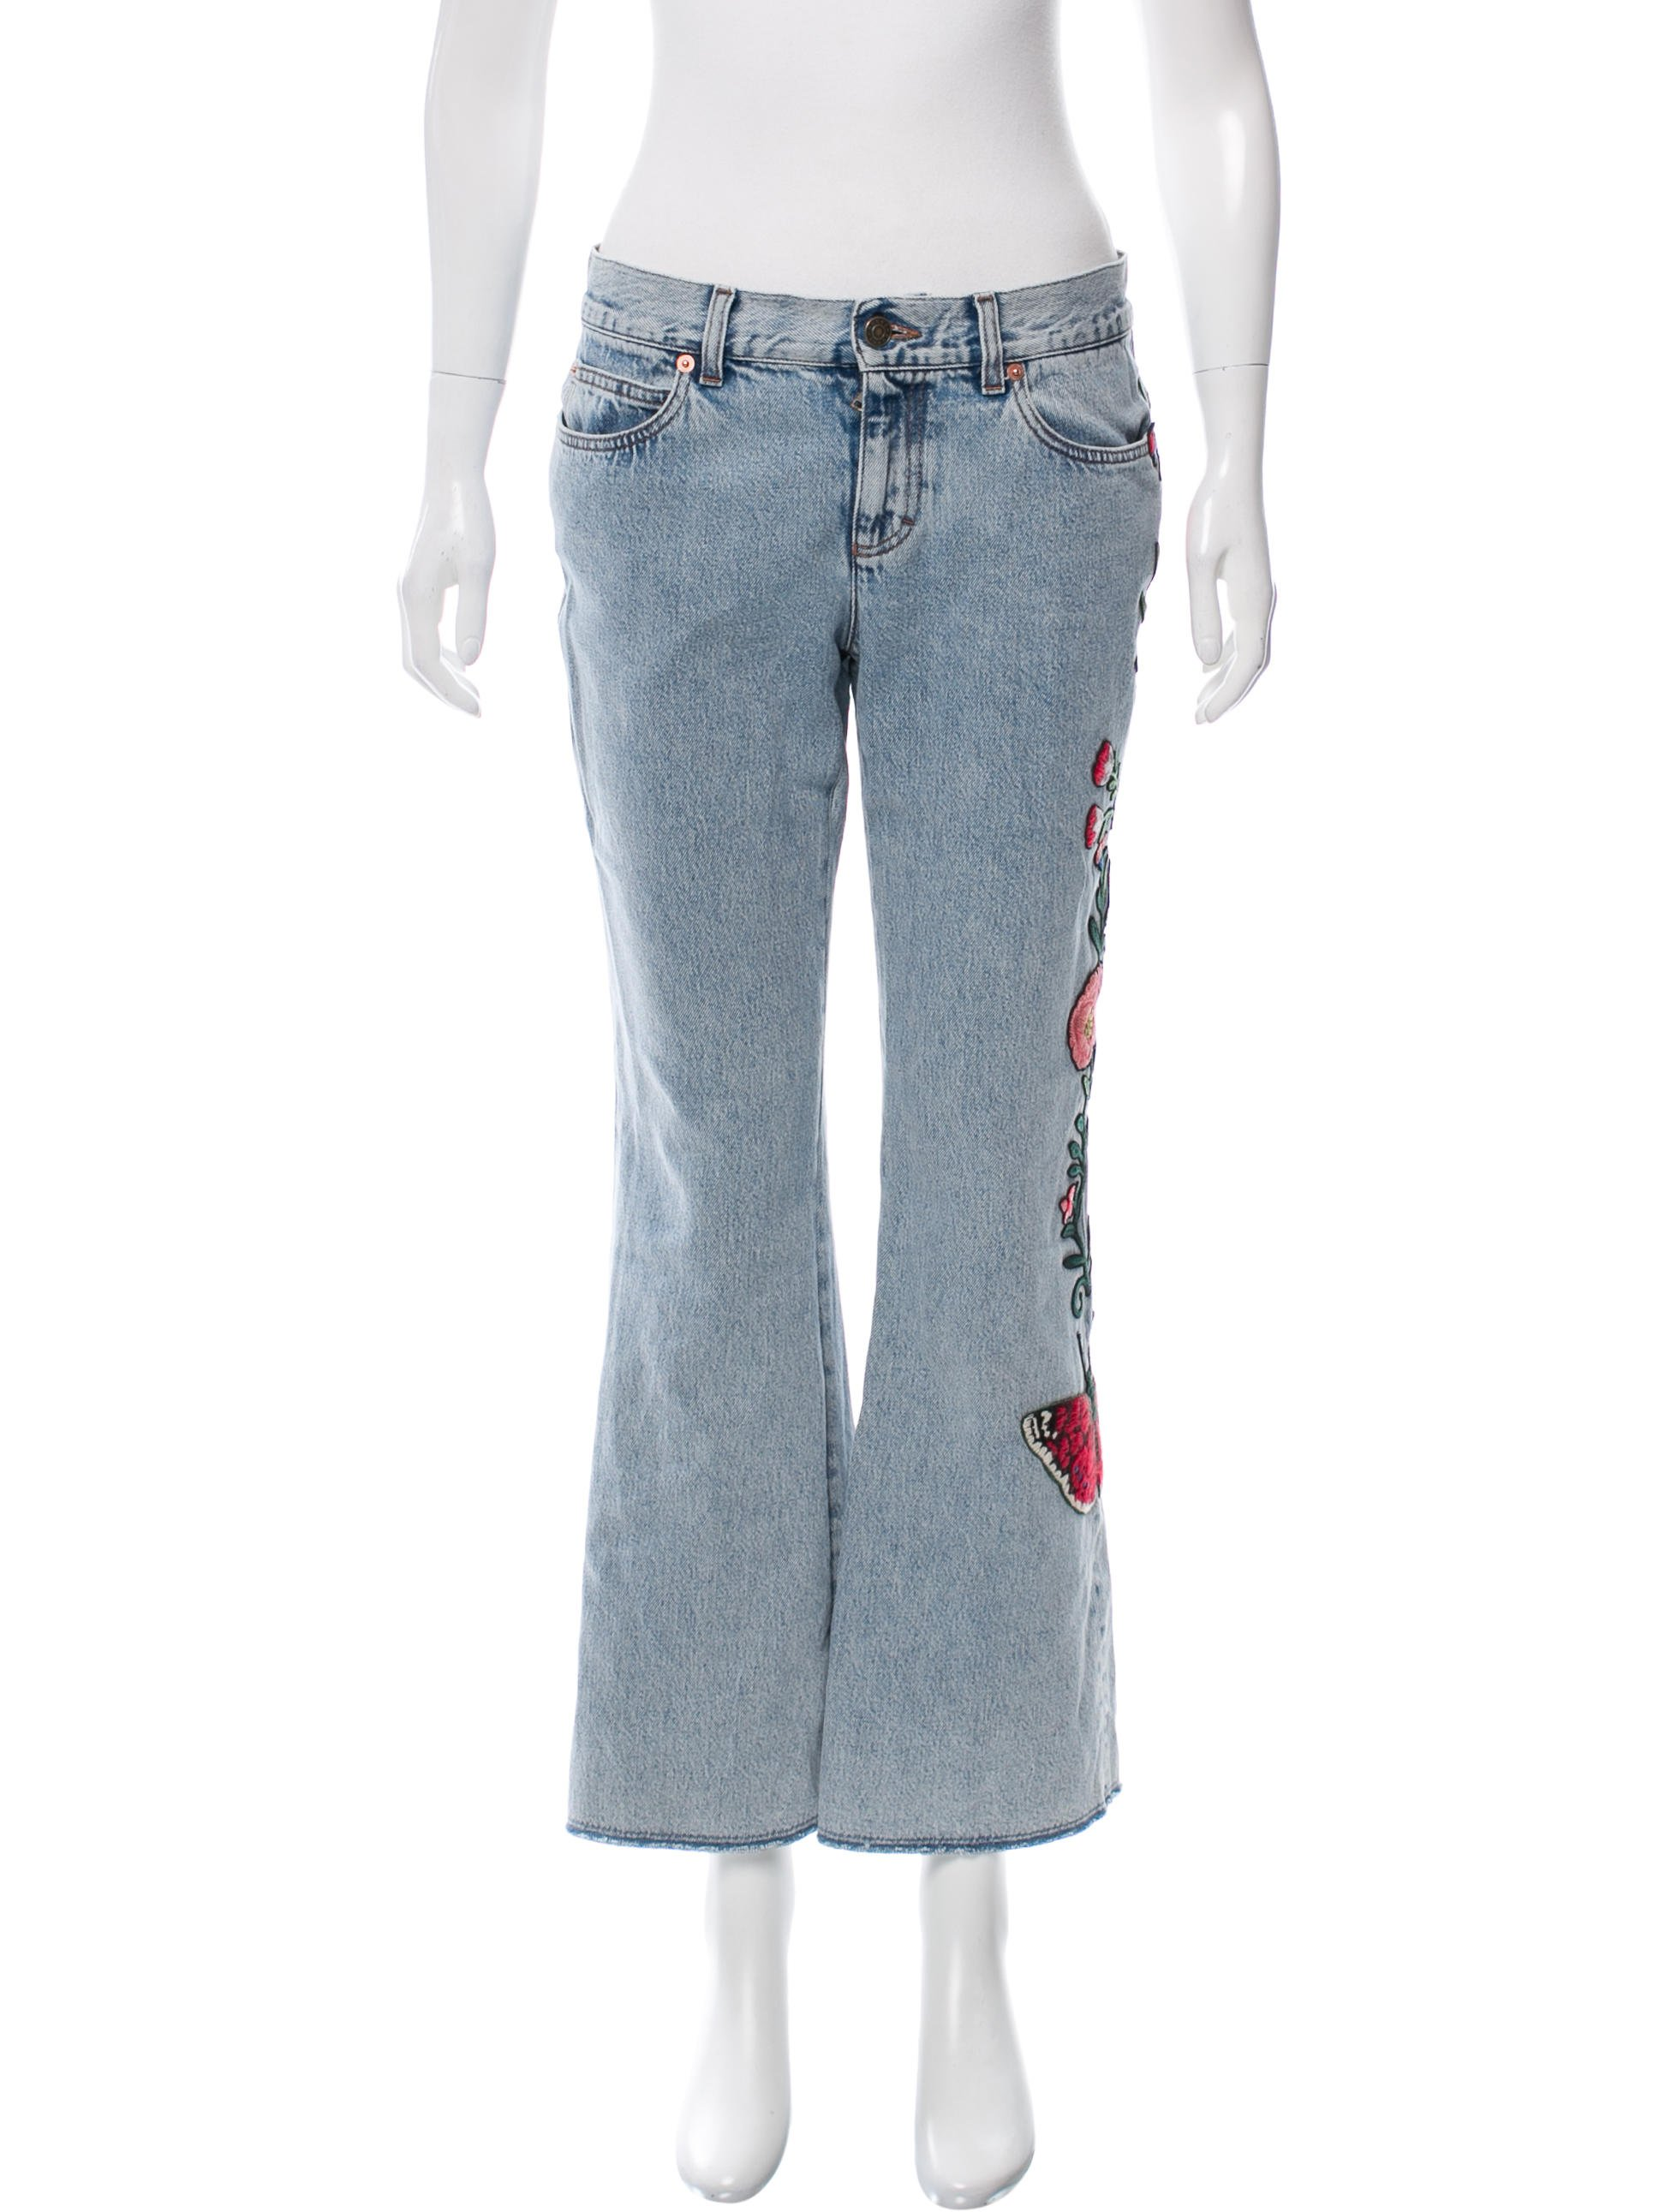 GUCCI Embroidered Mid-Rise Pants; Size: US 28; $595.00